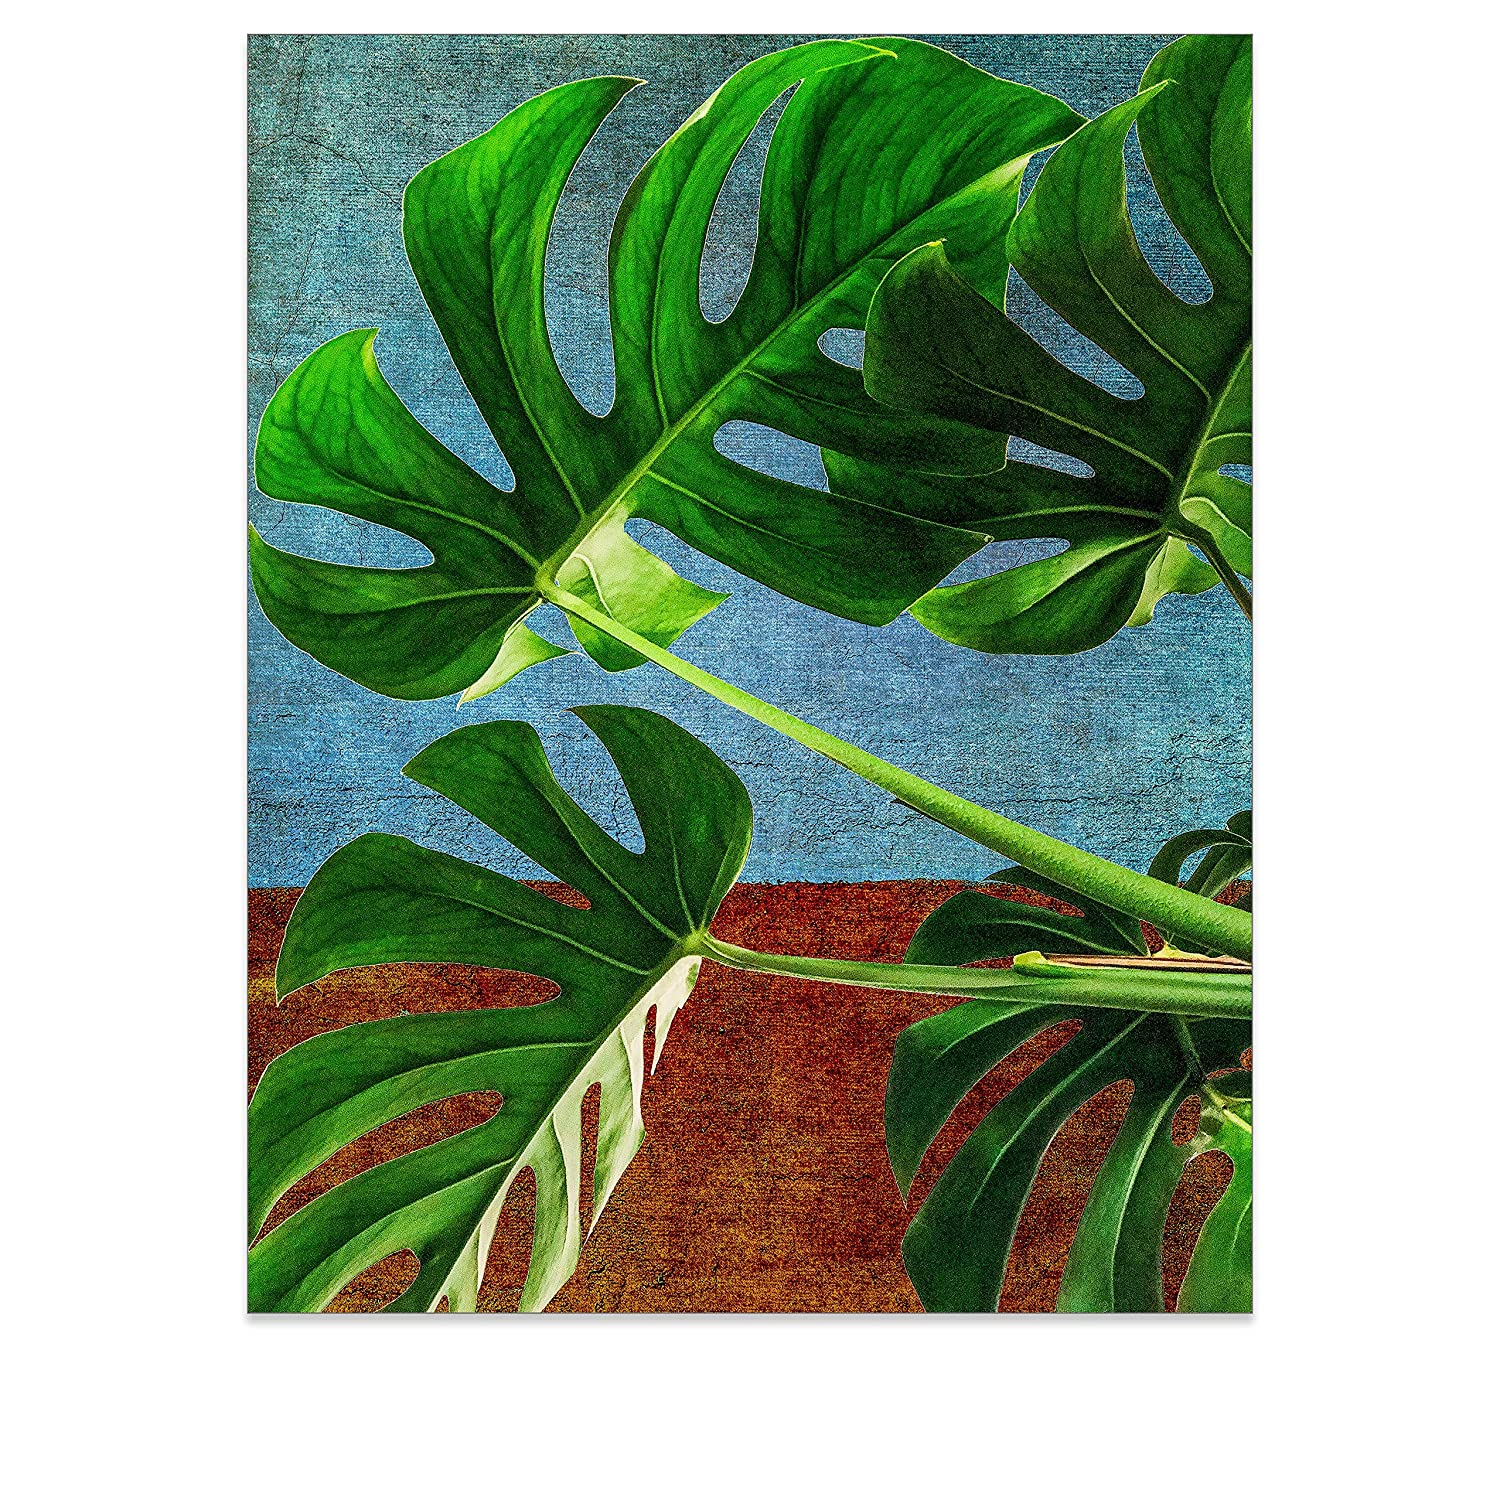 Amazon Com Monstera Leaf Wall Art Tropical Leaves Art Print Botanical Wall Decor Plant Pictures Nature Posters Farmhouse Wall Art Modern Date Palm Leaf Prints 8x10 Unframed Handmade The leaves are trending these days, marking summer vibes around. monstera leaf wall art tropical leaves art print botanical wall decor plant pictures nature posters farmhouse wall art modern date palm